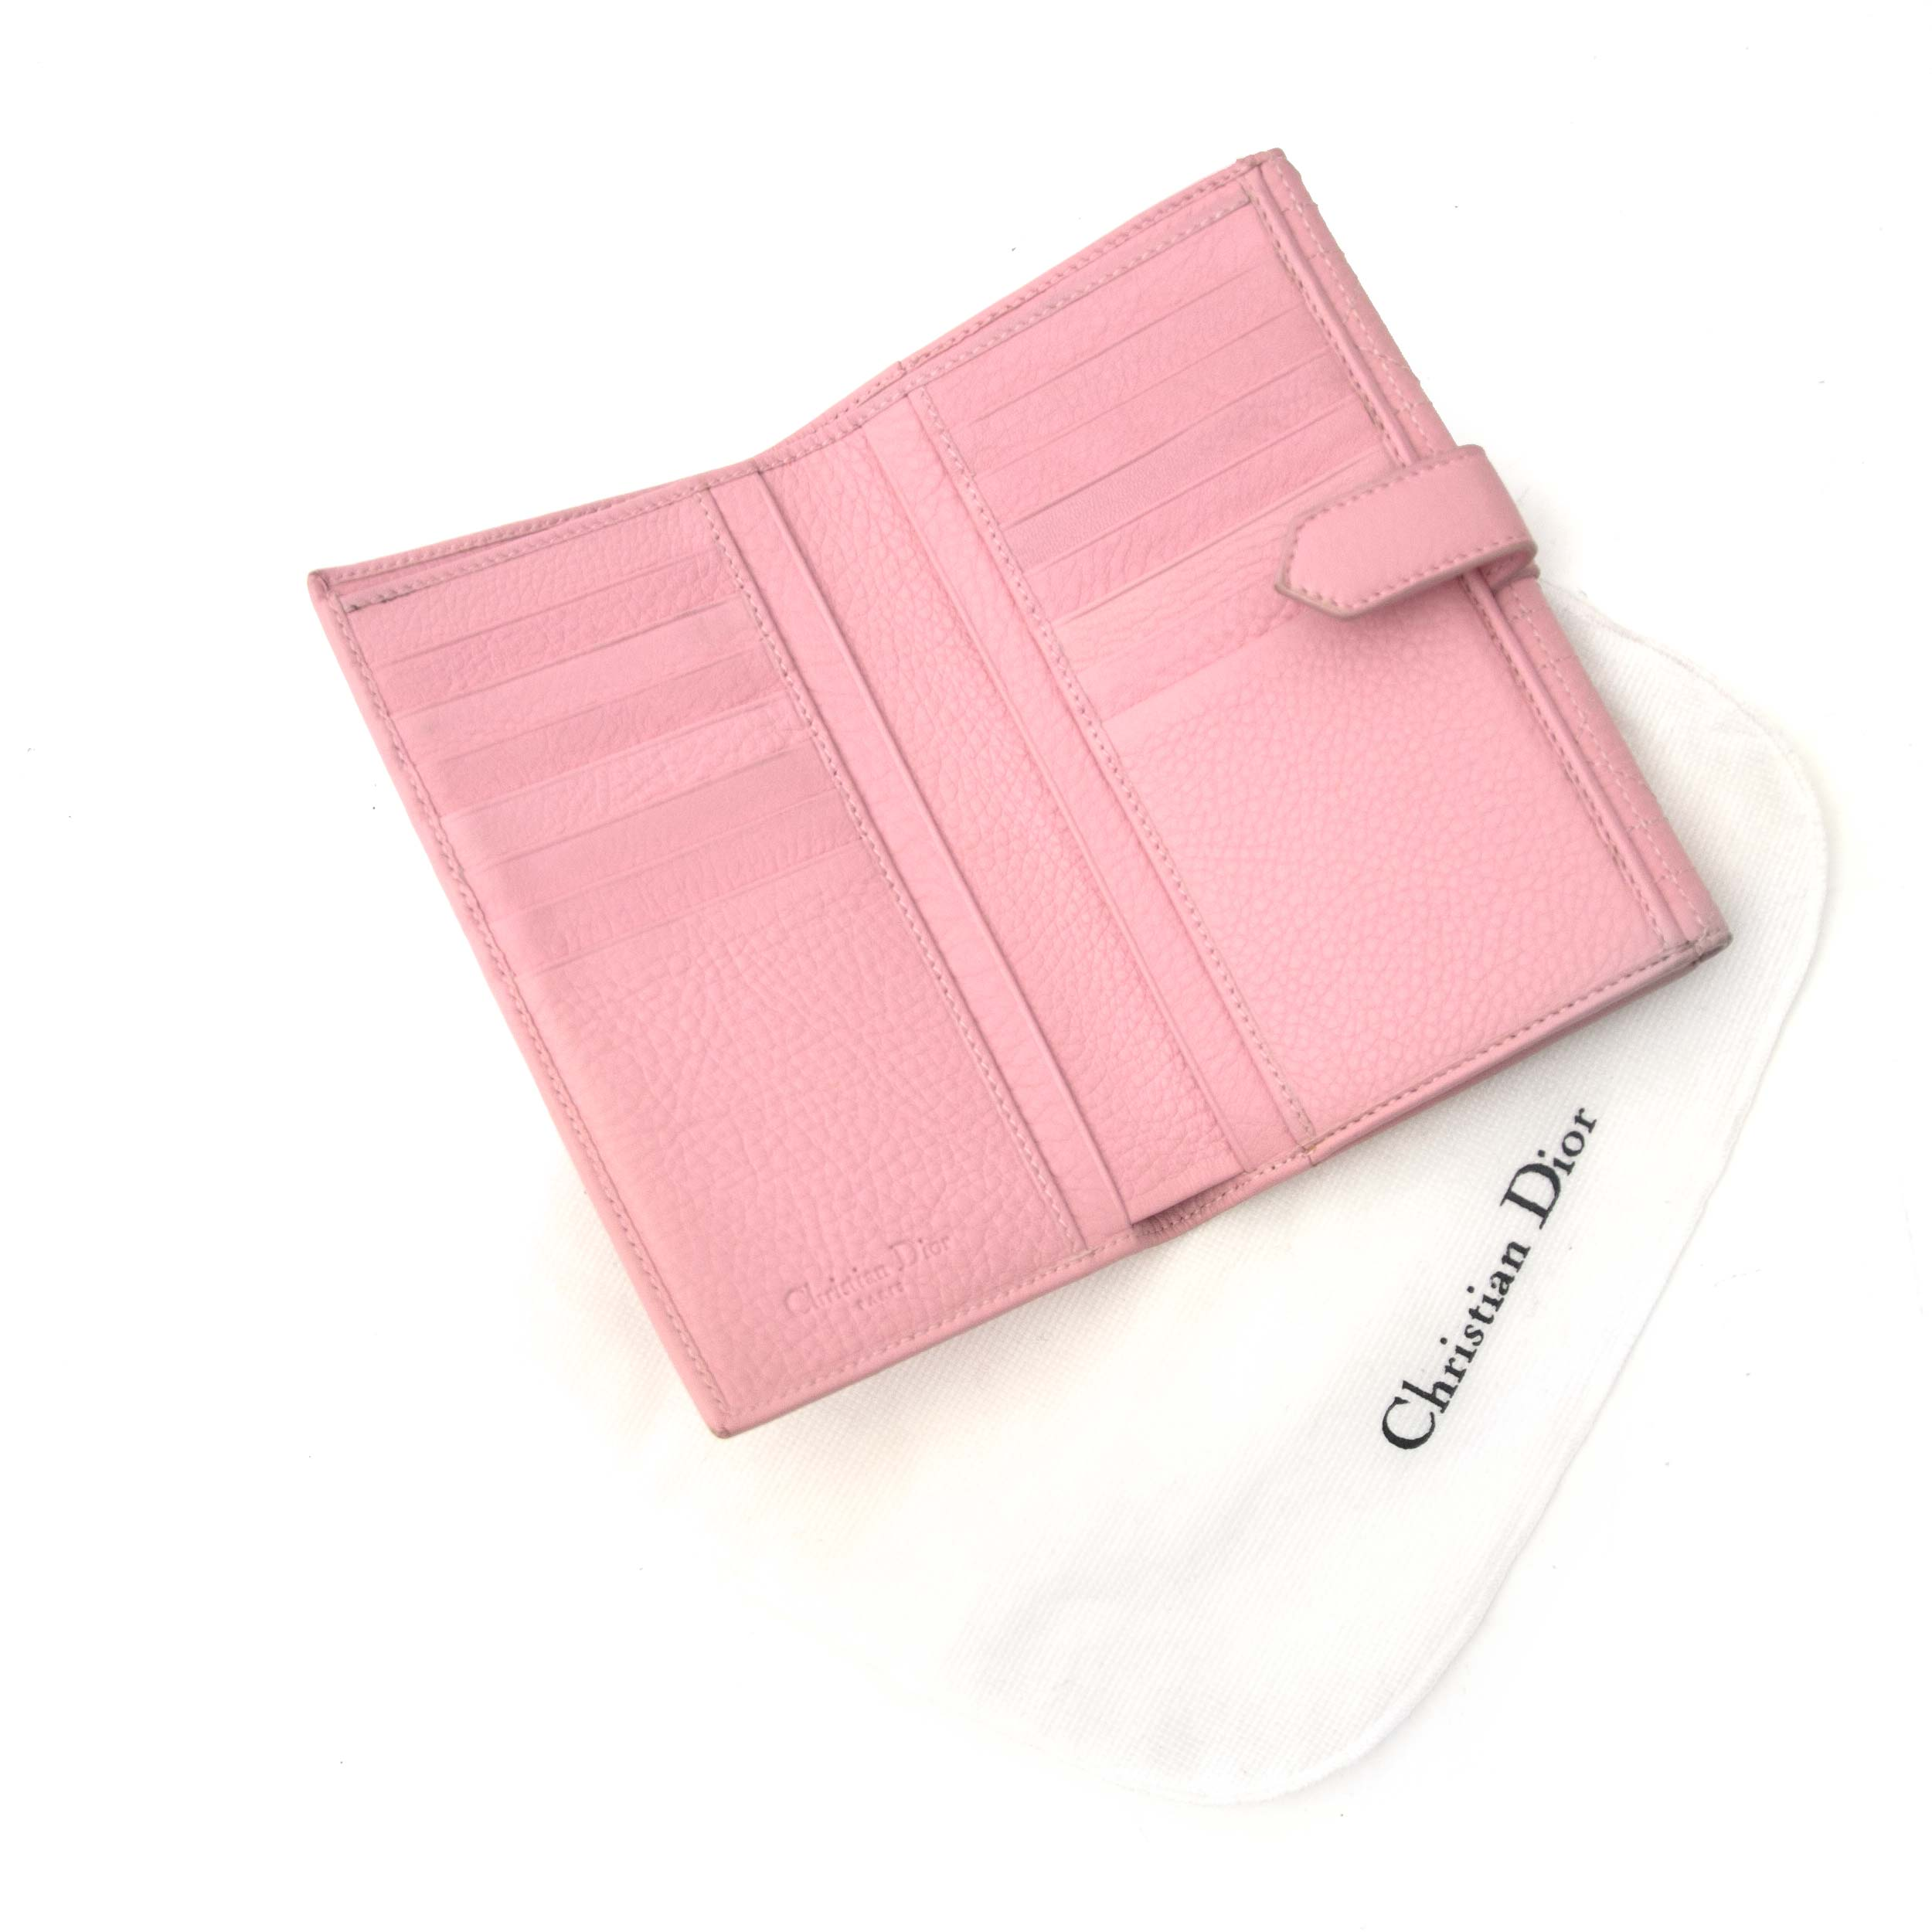 Buy now this beautiful wallet from Dior on labellov.com